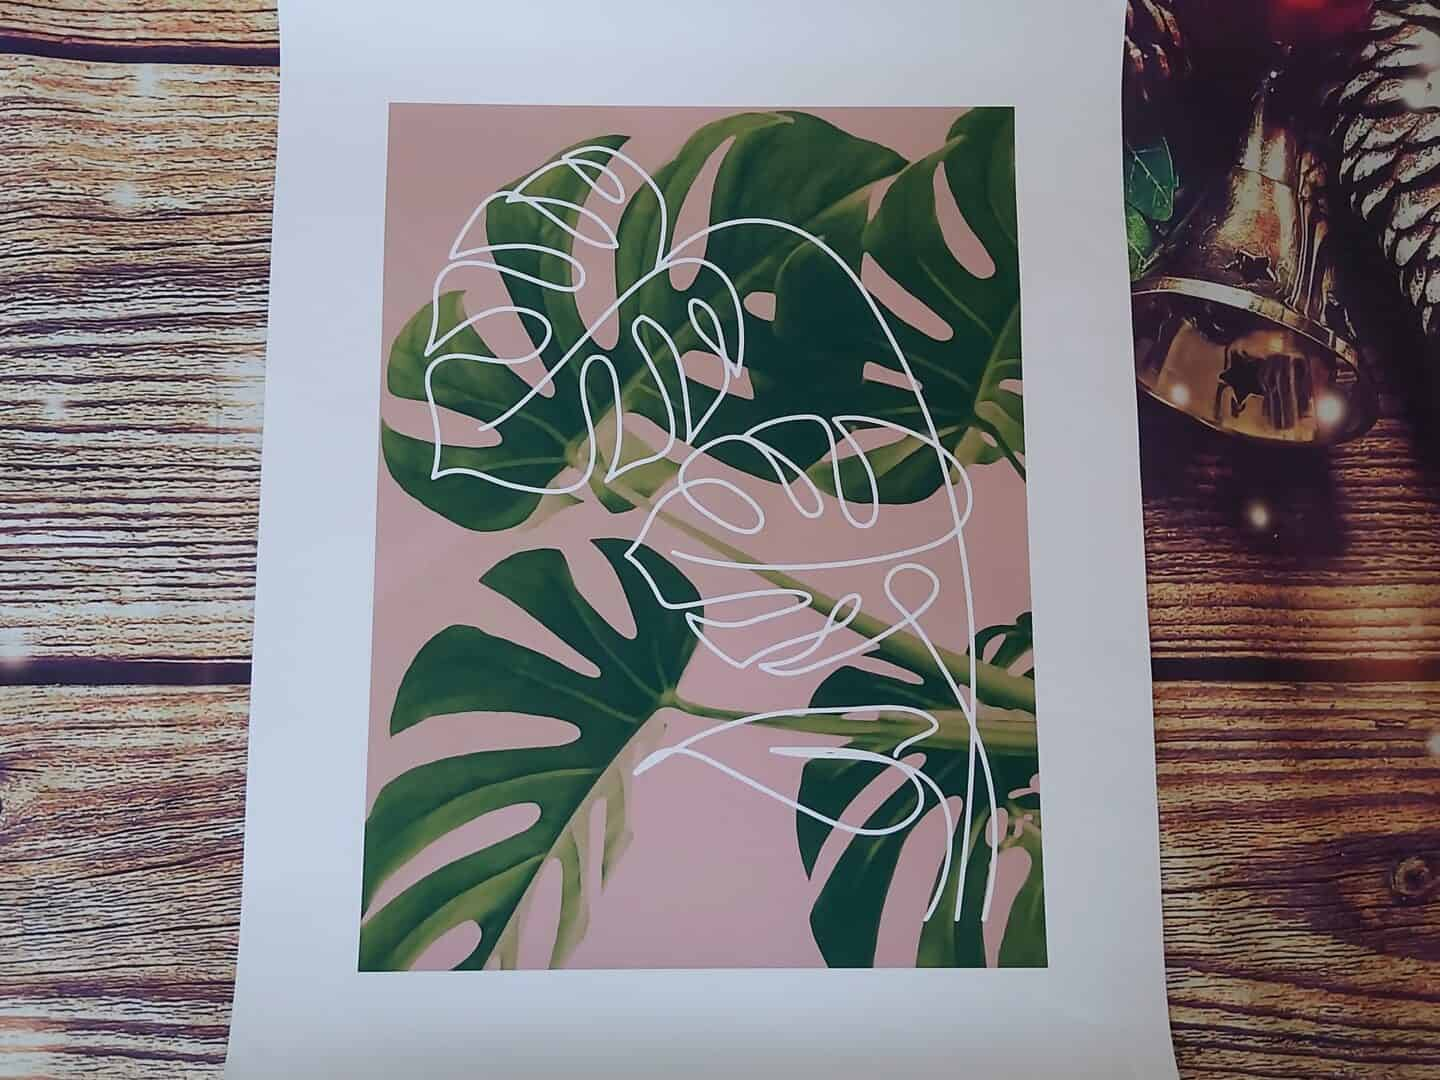 Floral print of green leaves on pink background